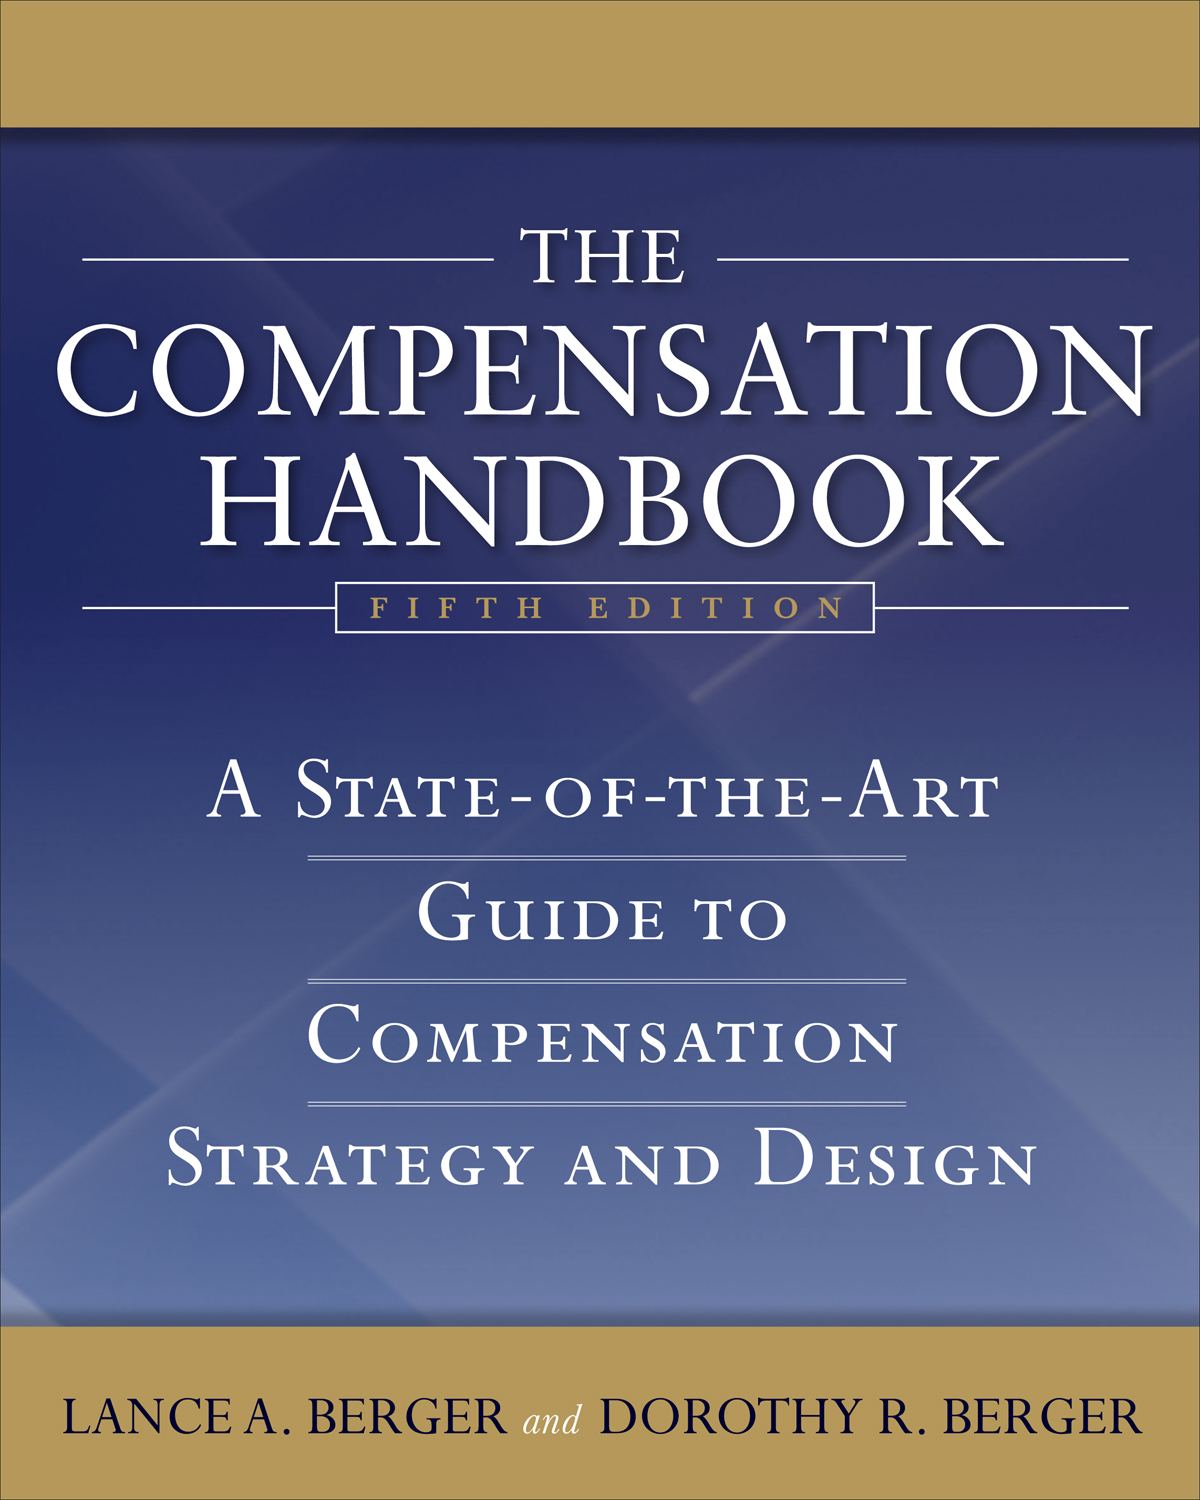 Download Ebook The Compensation Handbook (5th ed.) by Lance A. Berger Pdf